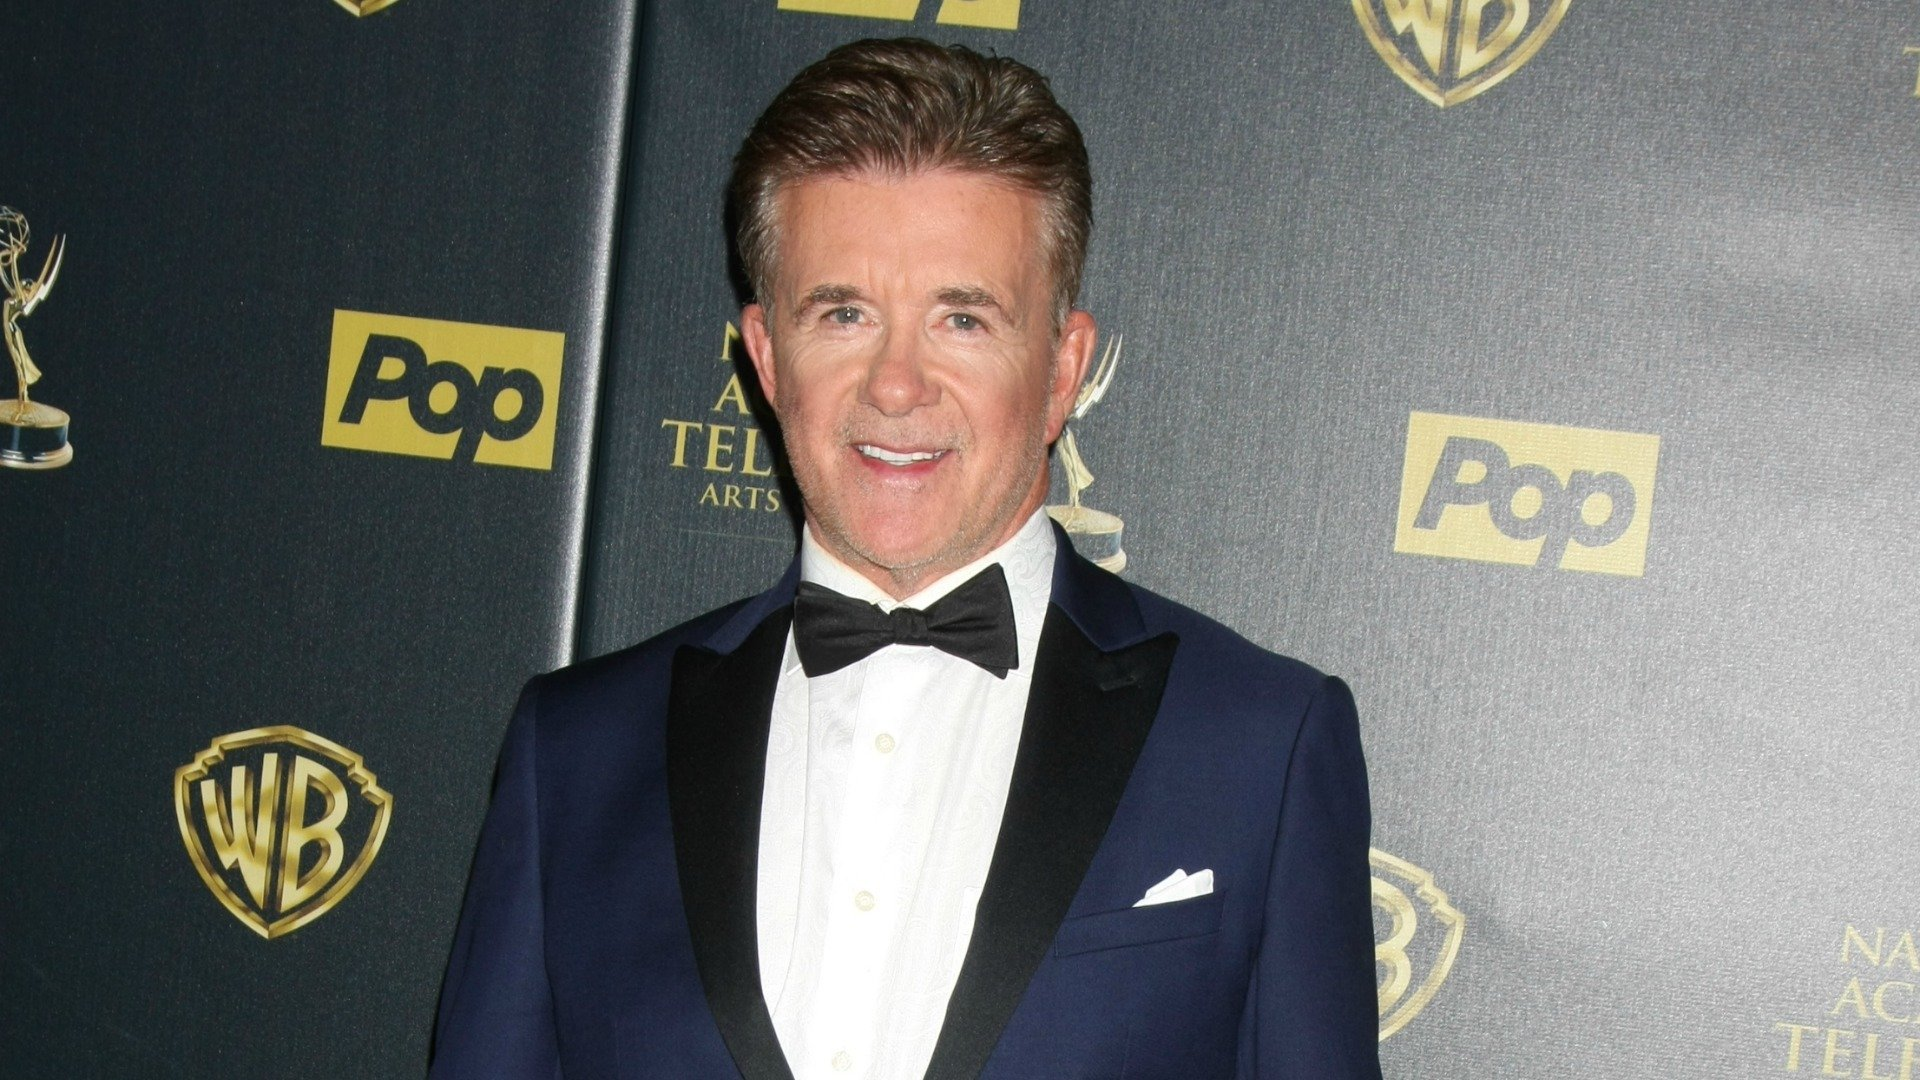 Growing Pains: décès de l'acteur canadien Alan Thicke